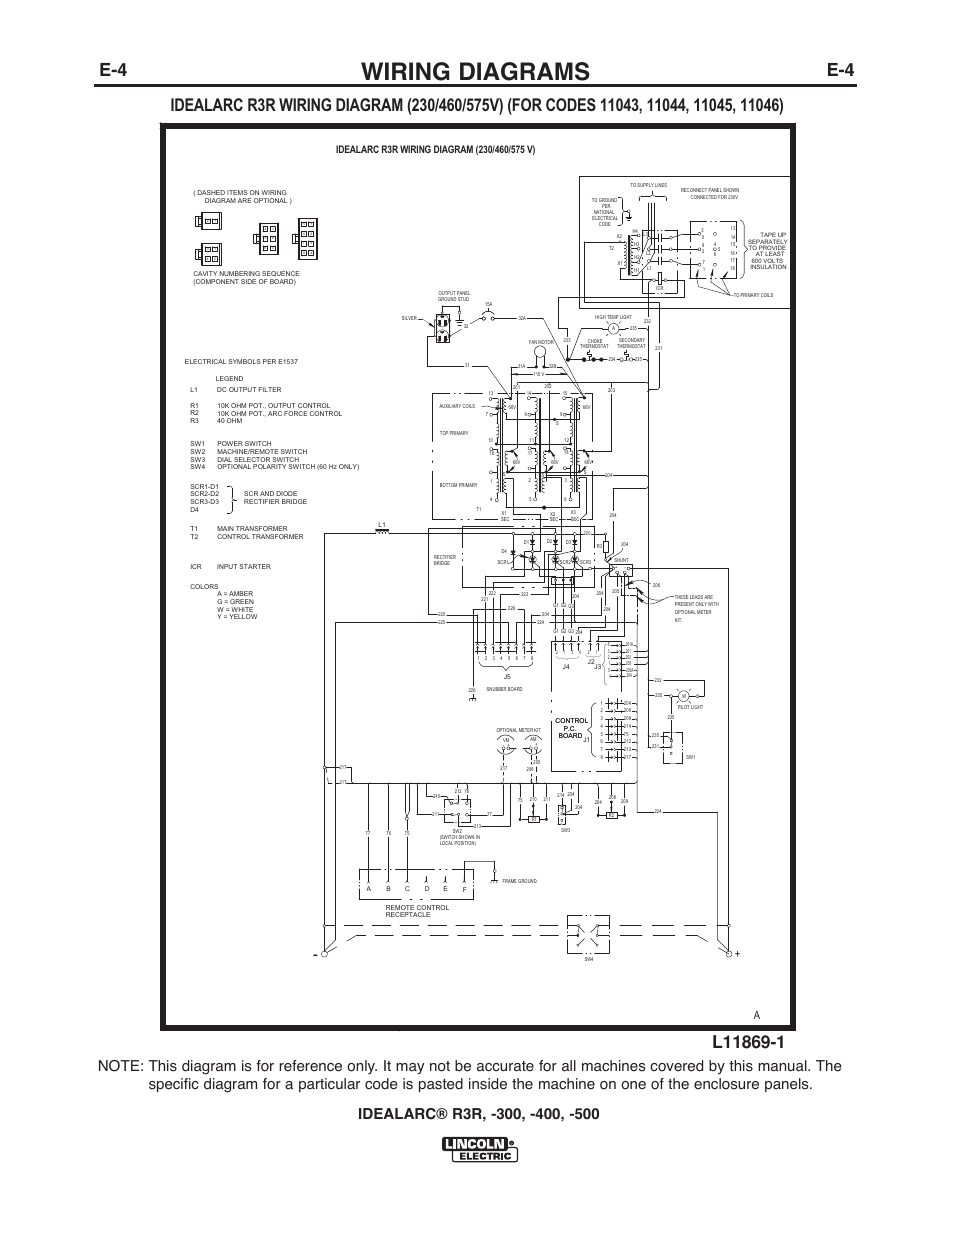 Wiring Diagrams Lincoln Electric Im409 Idealarc R3r 400 User 225 S Diagram Manual Page 26 32